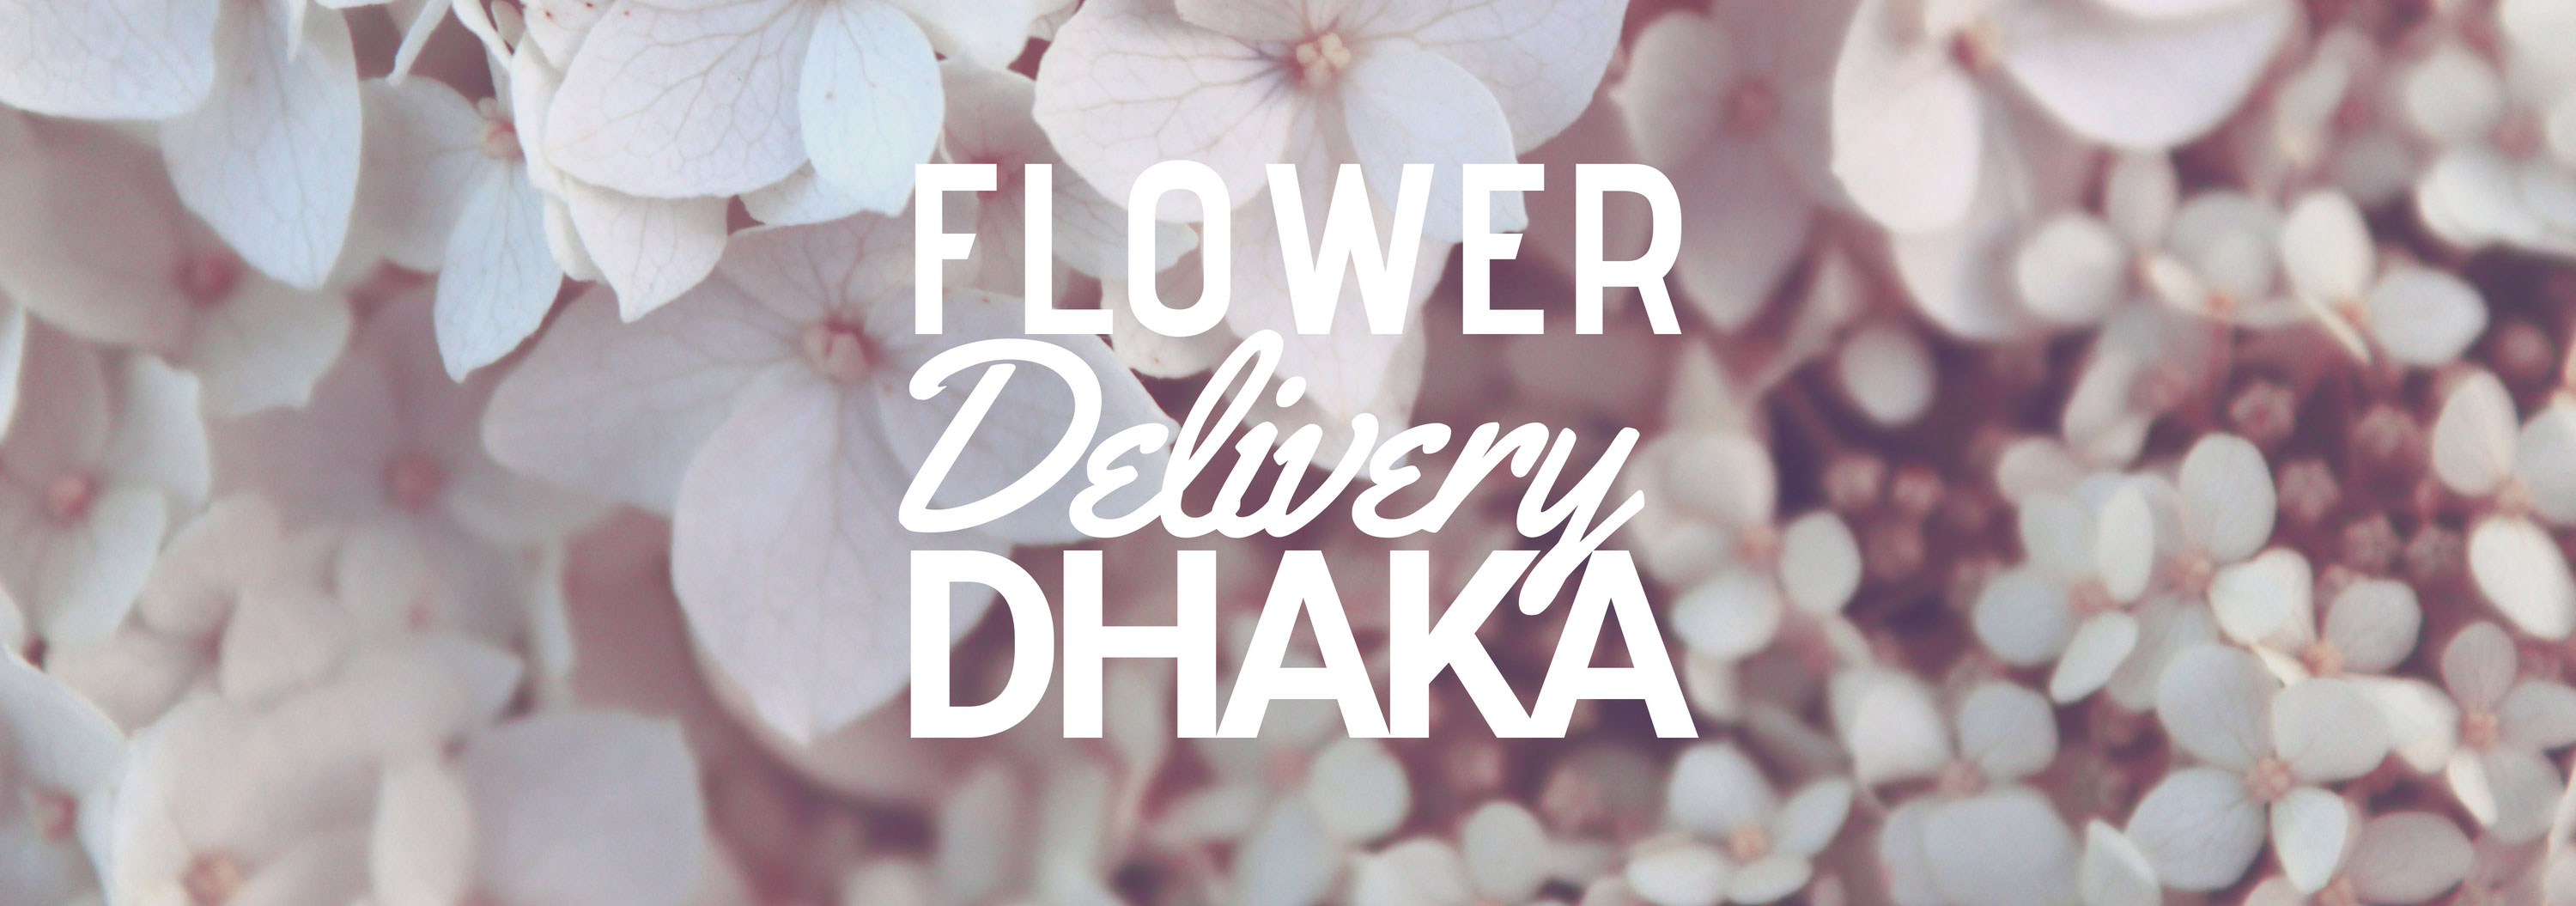 8 Best Options for Flower Delivery in Dhaka